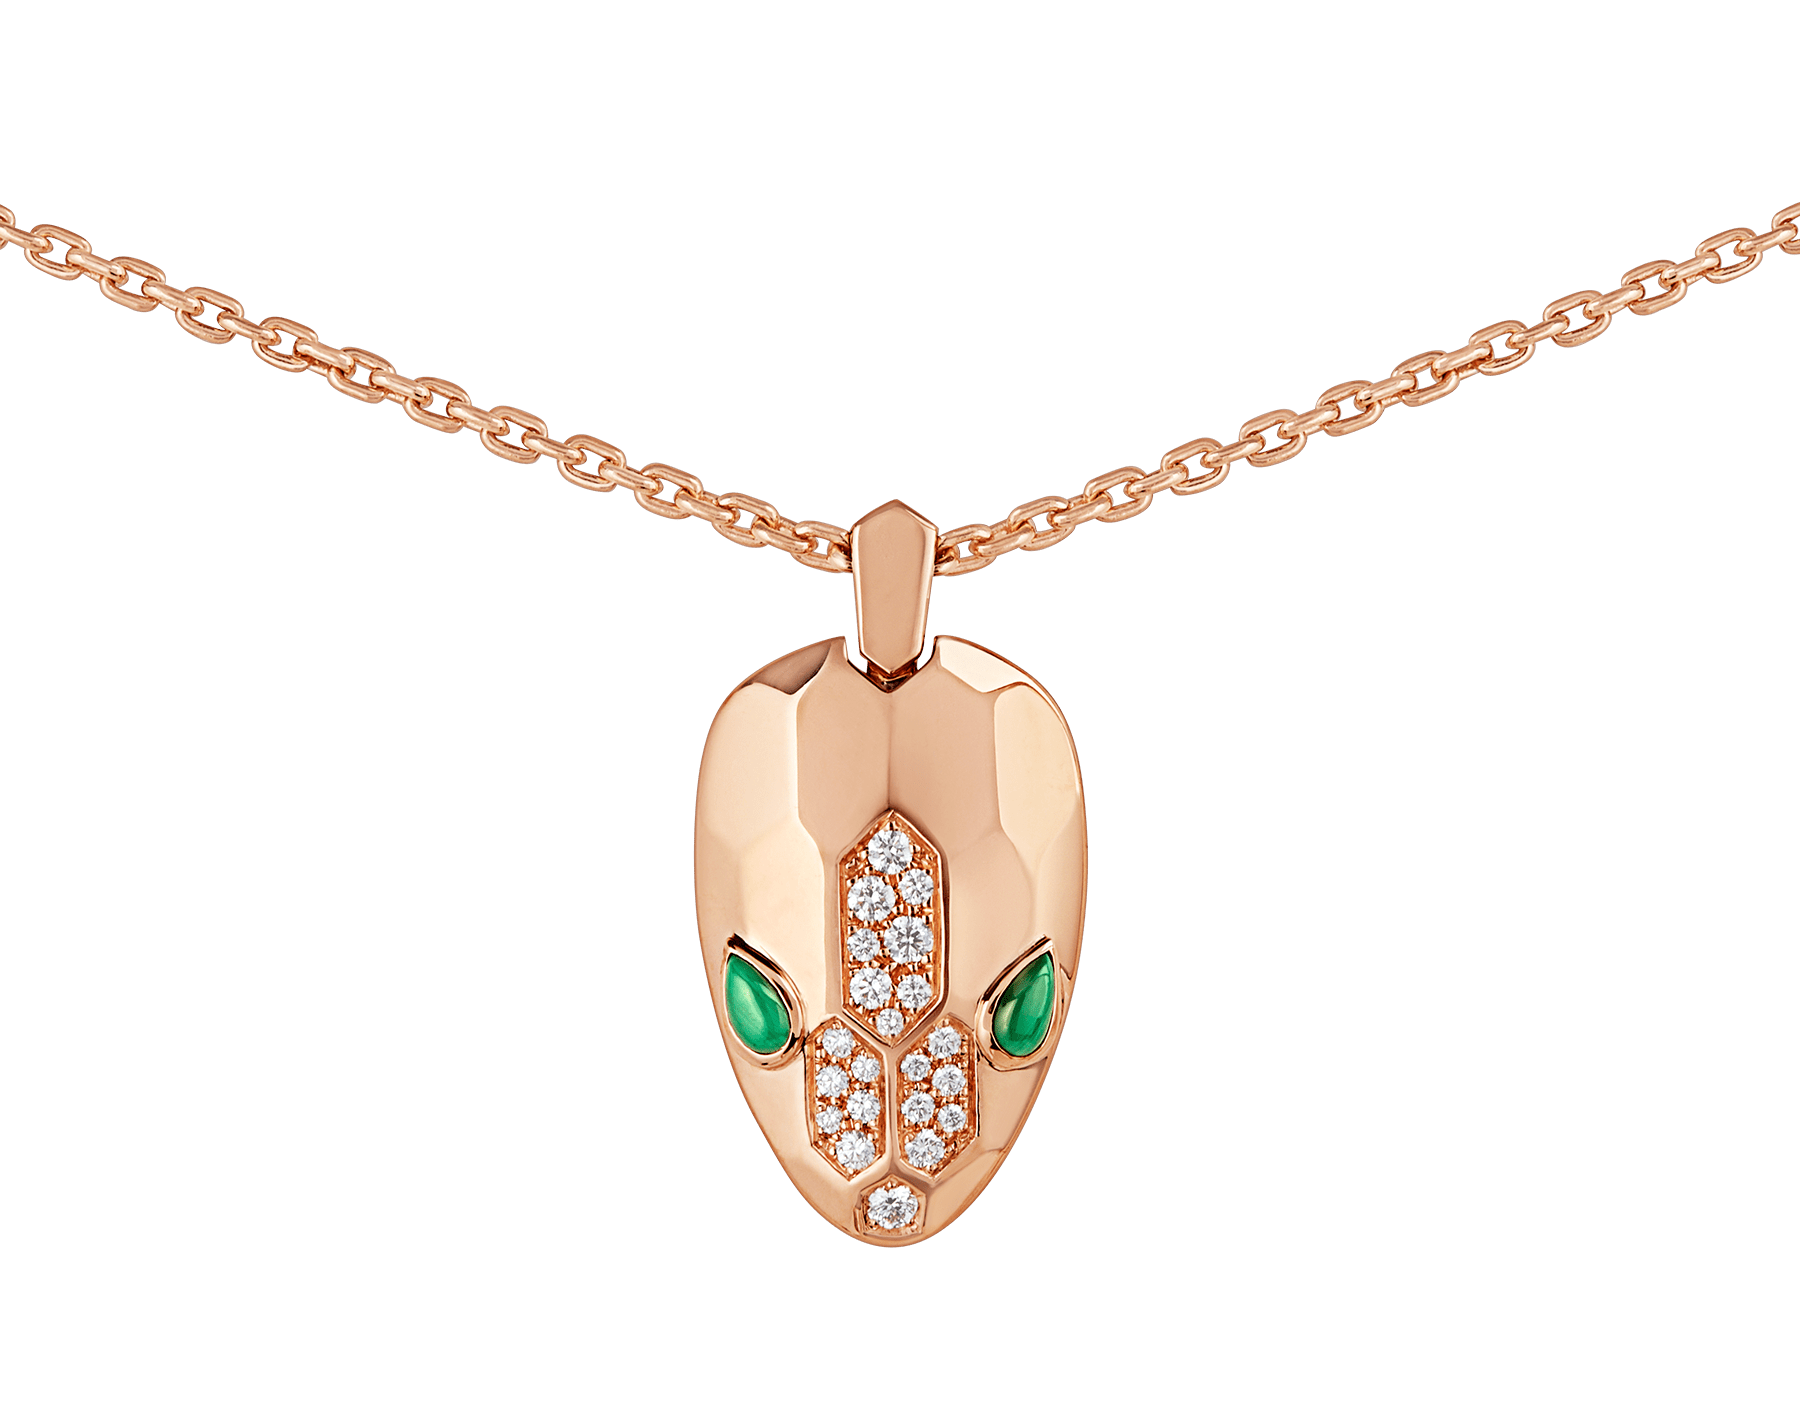 Serpenti necklace with 18 kt rose gold chain and pendant, set with malachite eyes and demi pavé diamonds. 352678 image 3